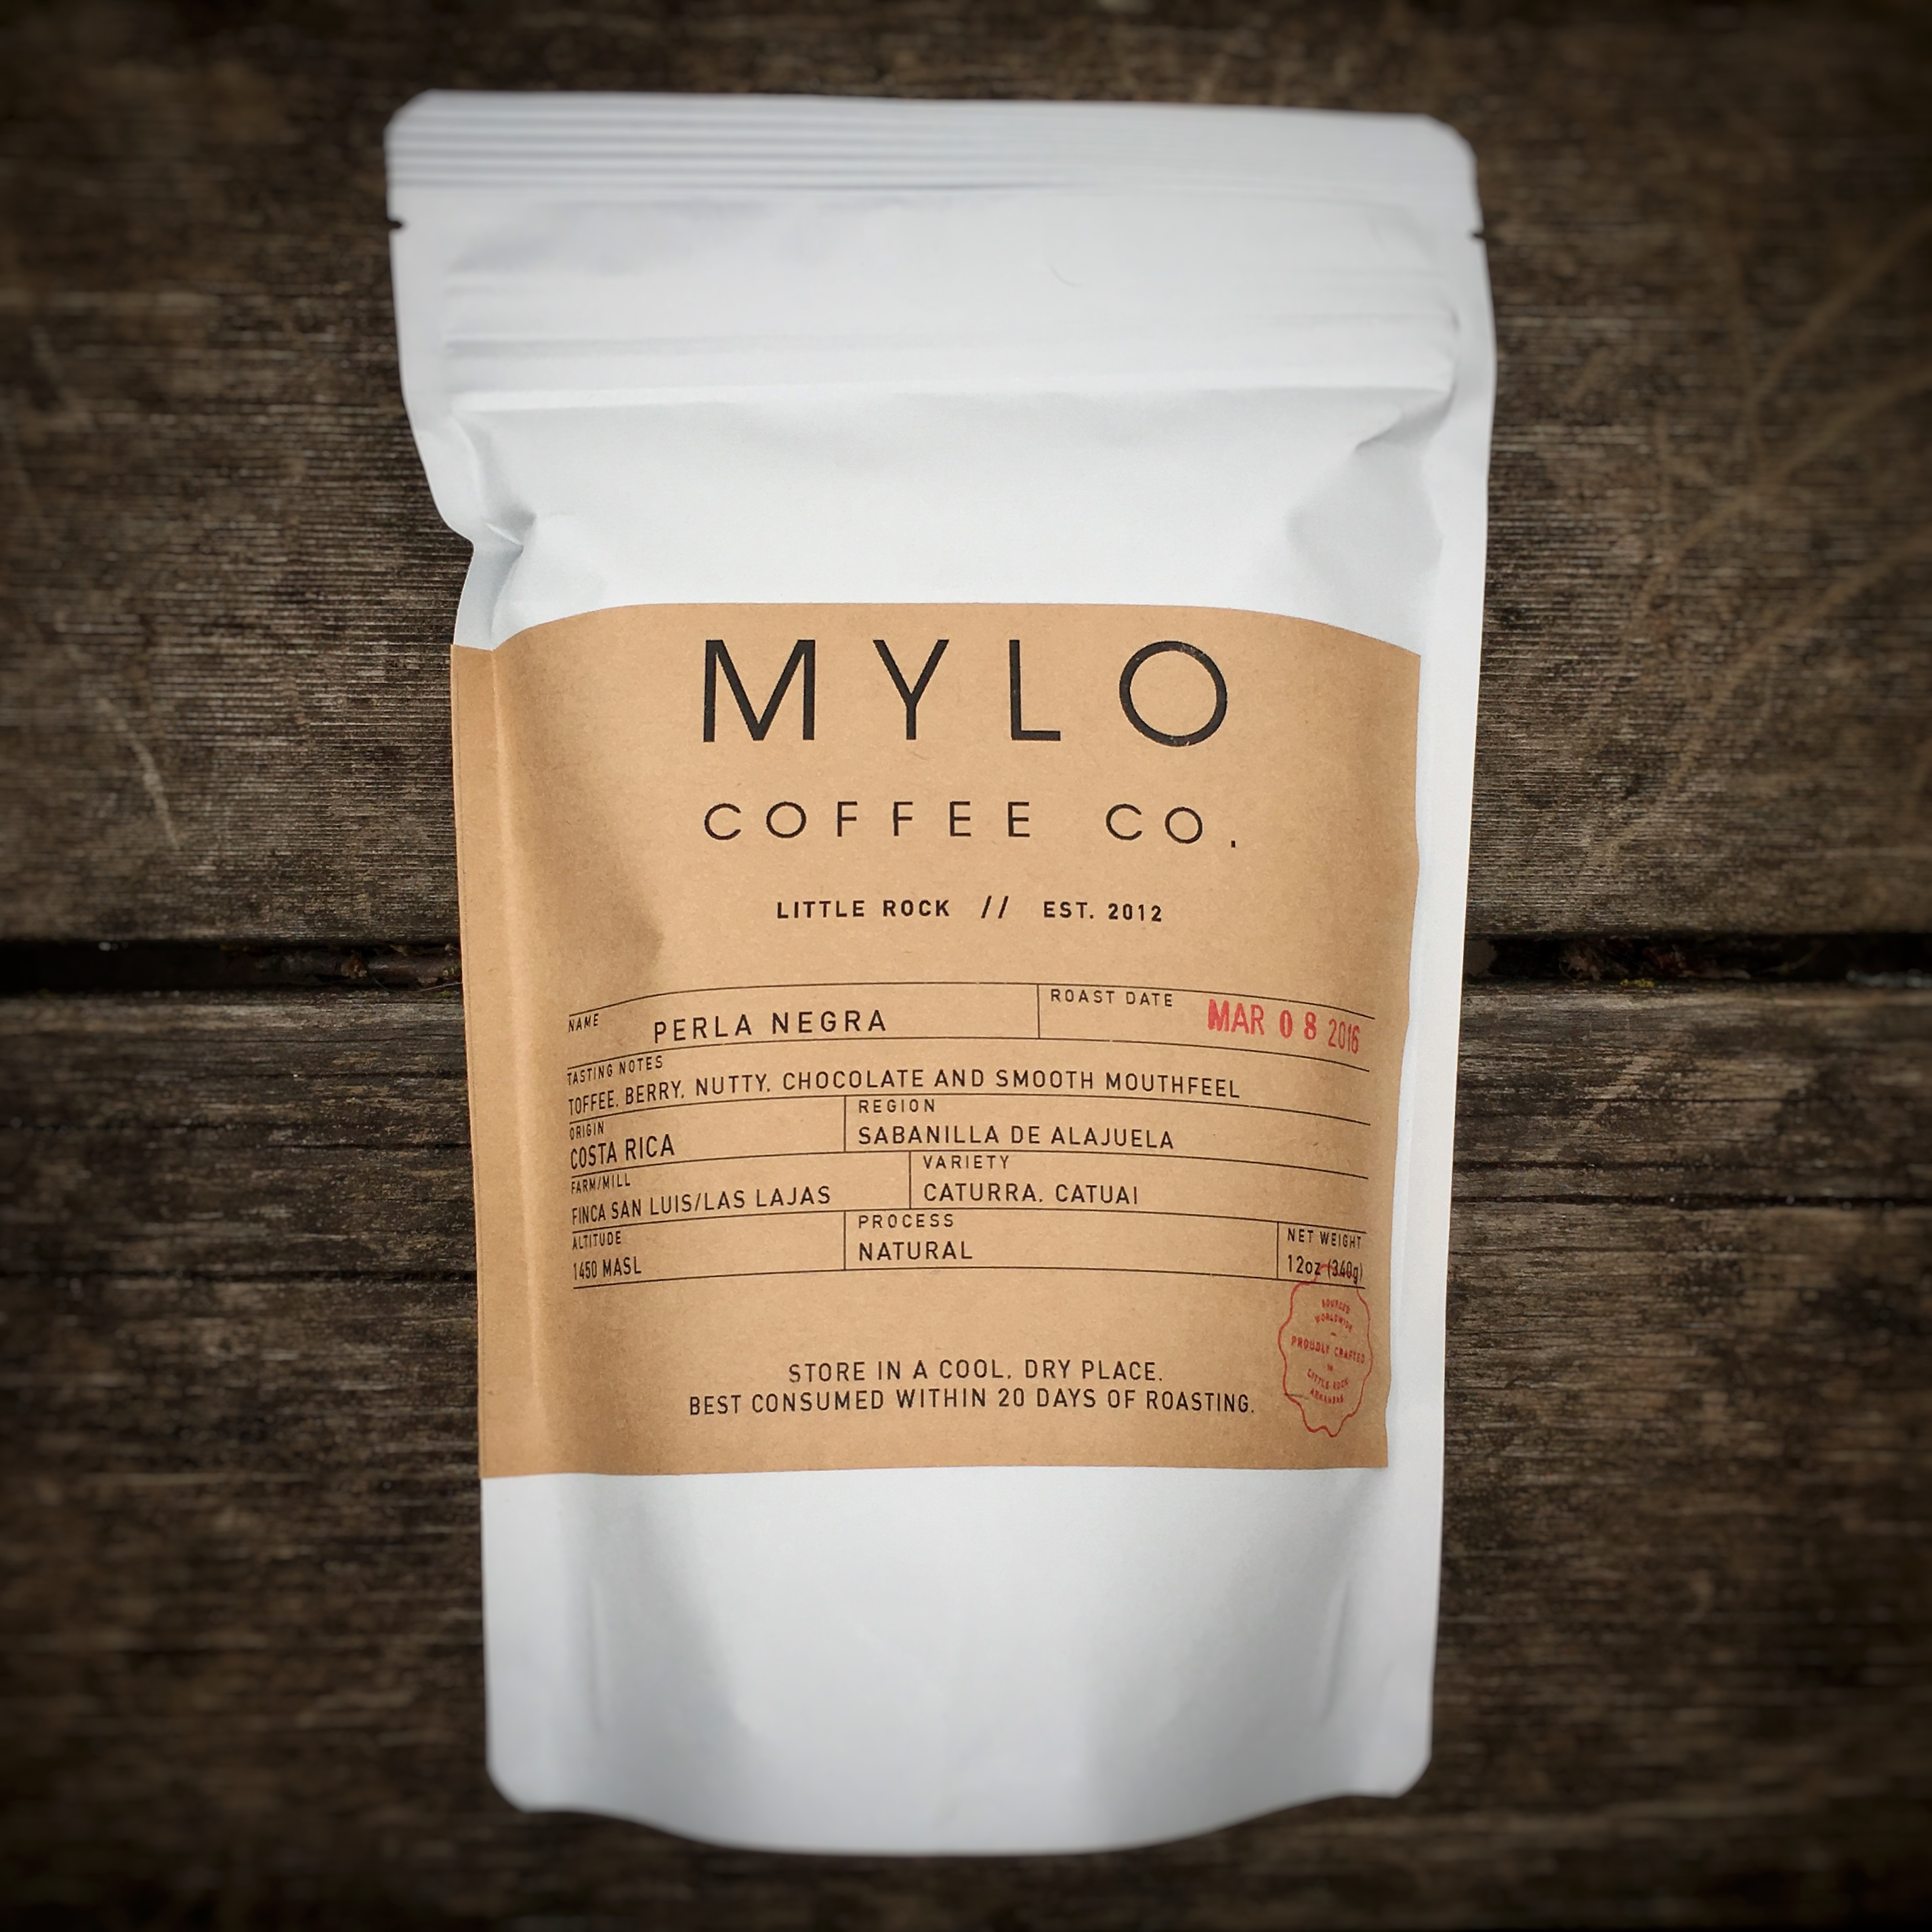 Mylo Coffee Co. Perla Negra Las Lajas